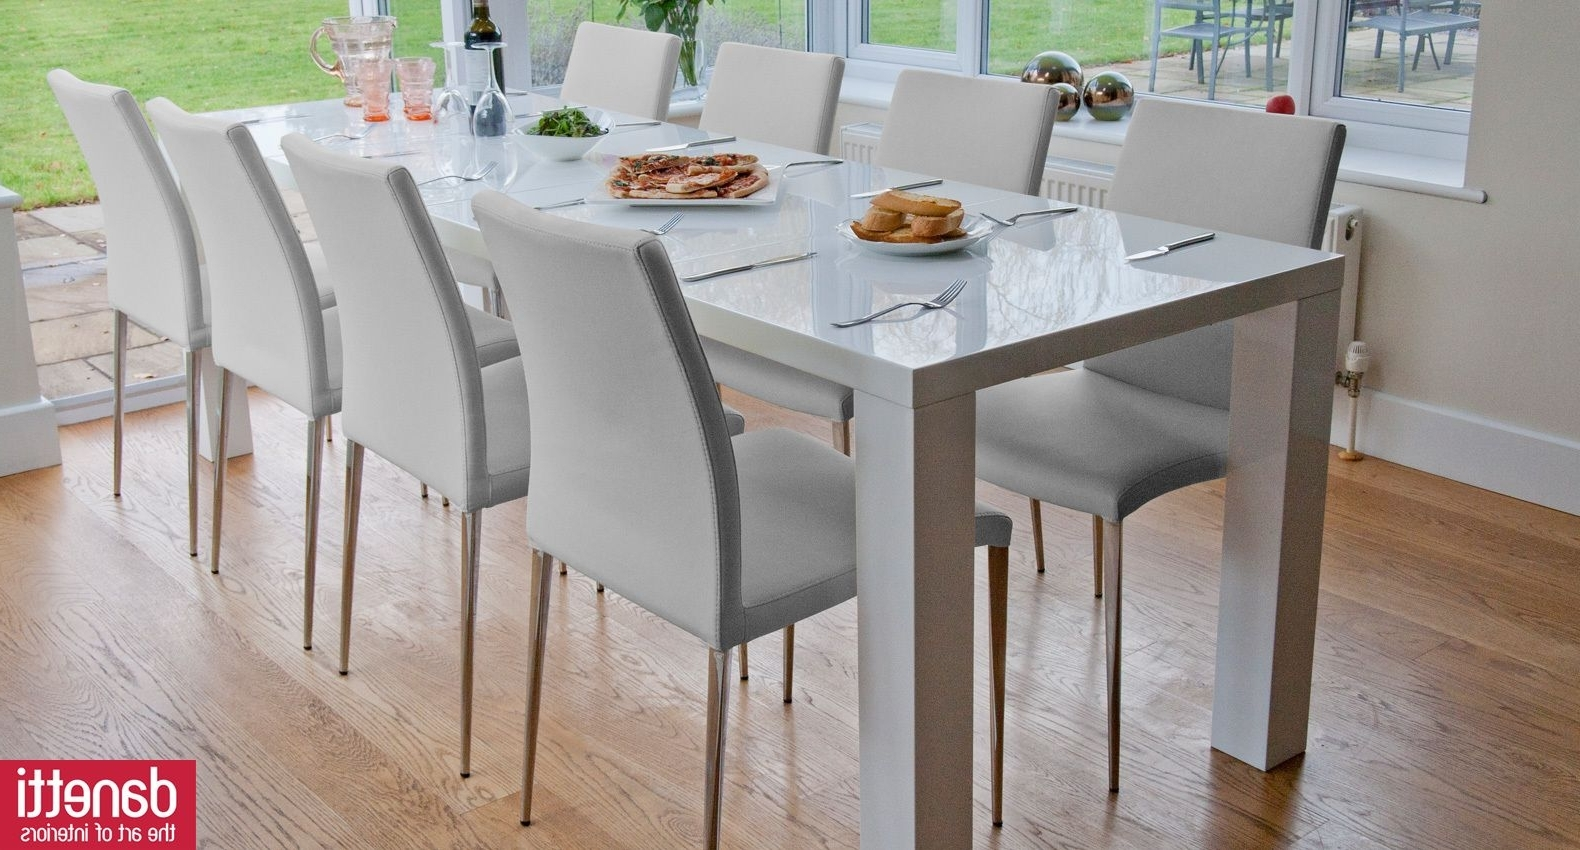 Future Home Throughout White Gloss Dining Room Tables (View 17 of 25)